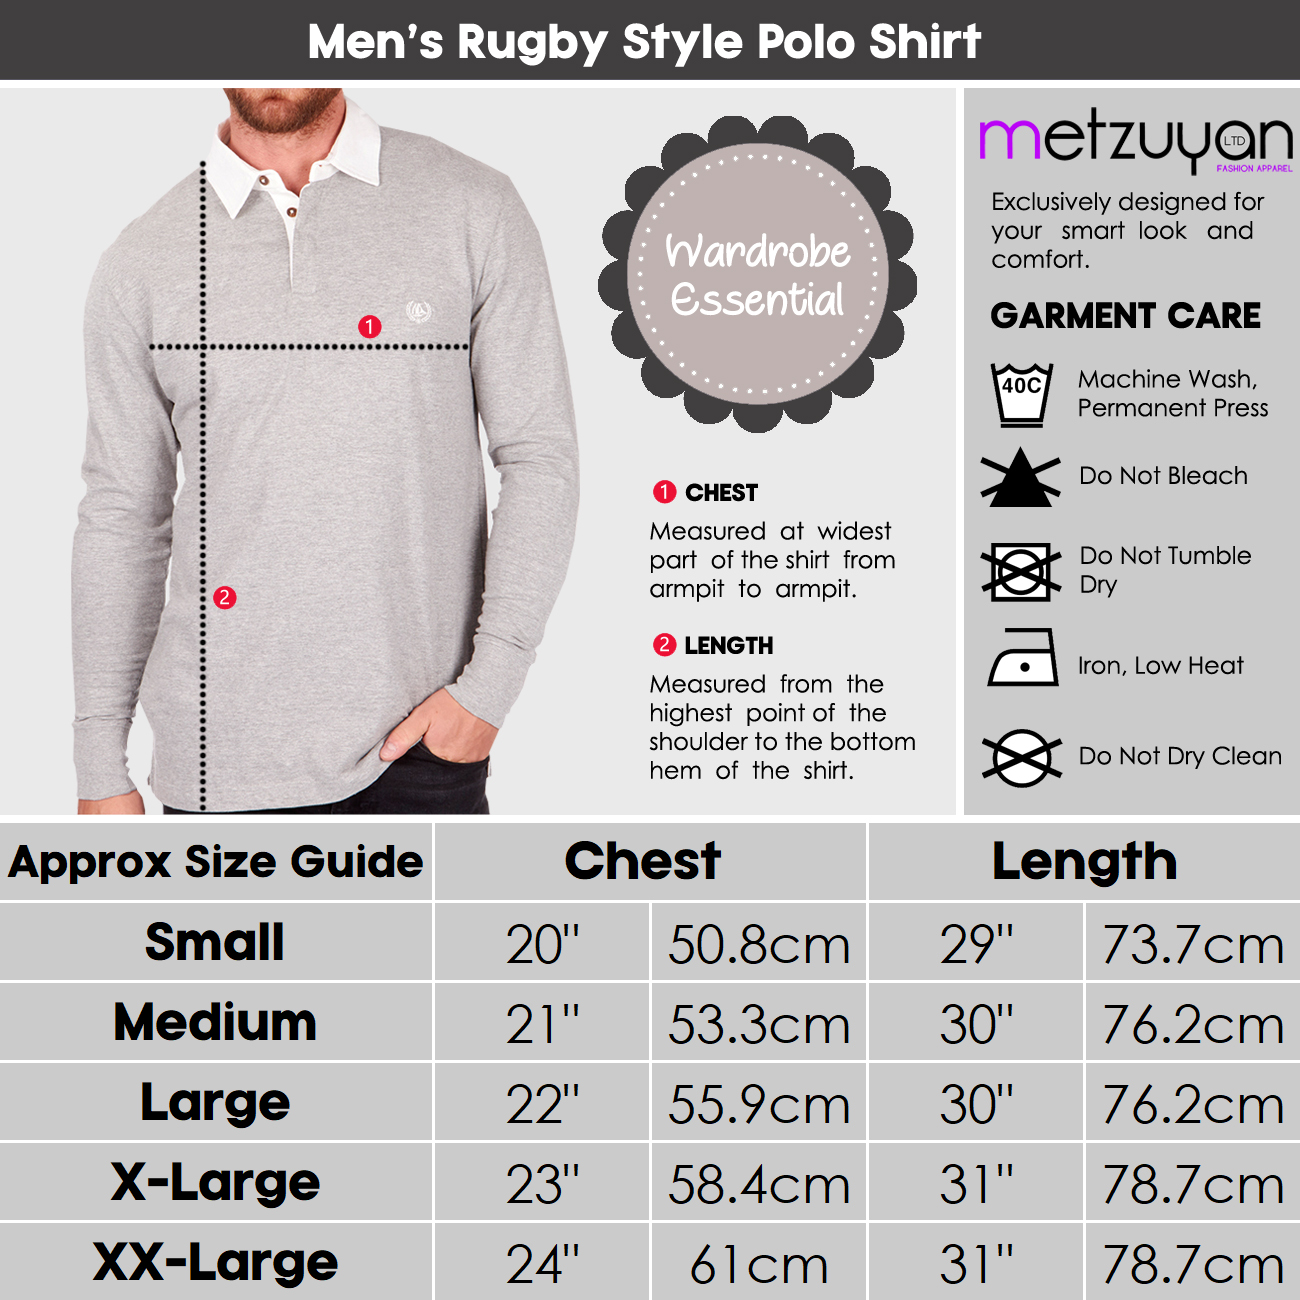 Mens-Rugby-Style-Polo-Shirt-Long-Sleeve-100-Cotton-Sports-Classic-Top-S-2XL thumbnail 5